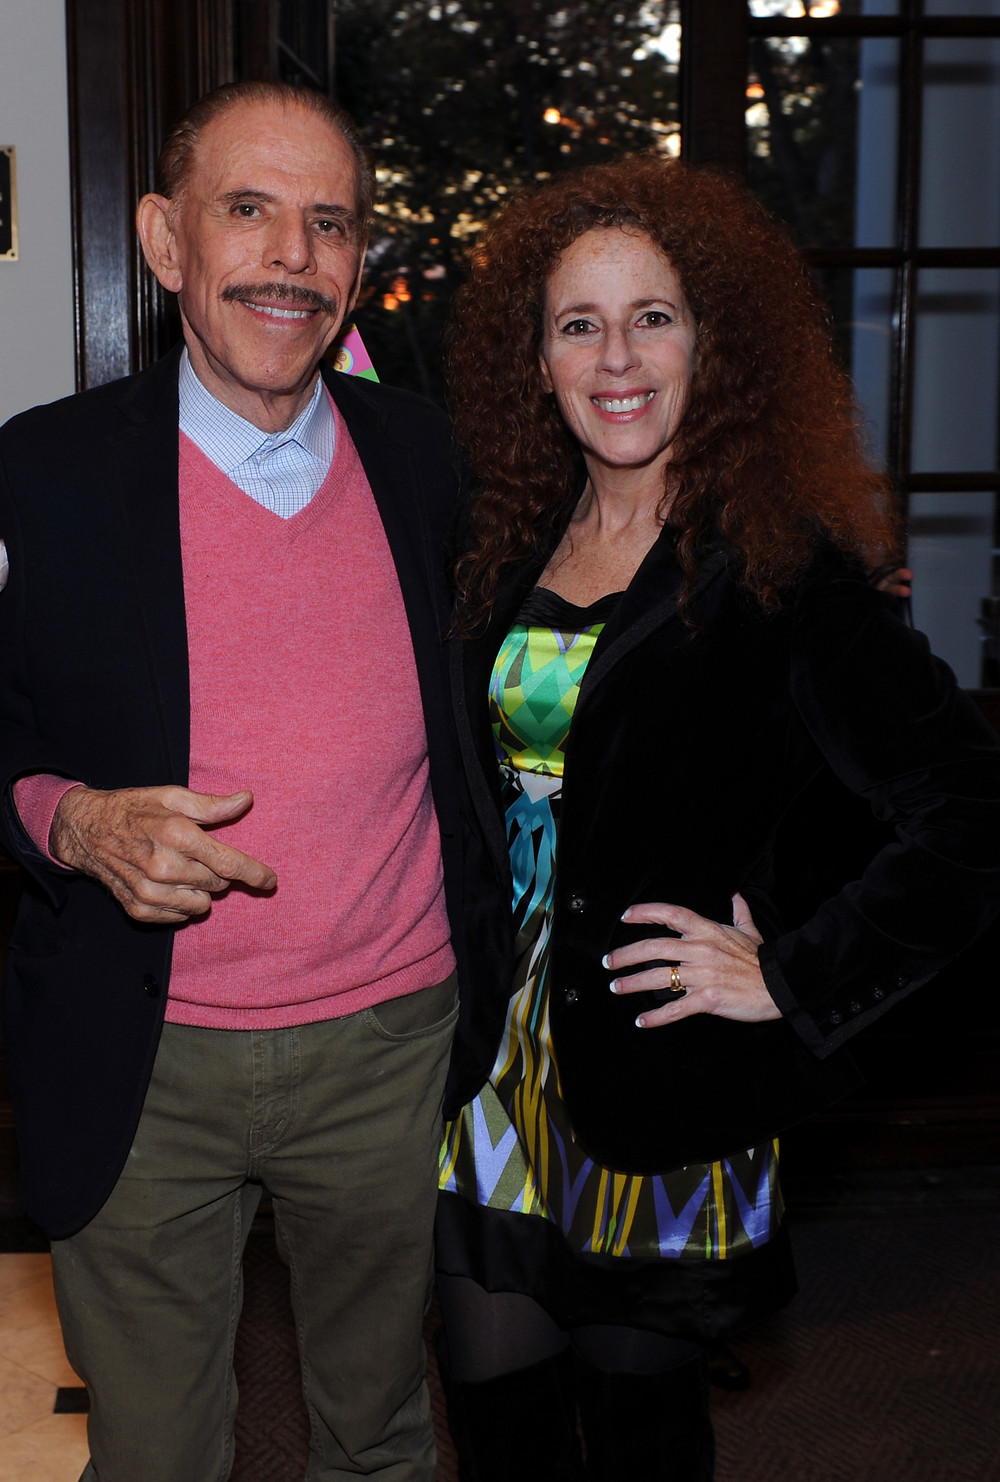 Meet Peter Max: Humble Iconic Artist Speaks About His Life [Interview]